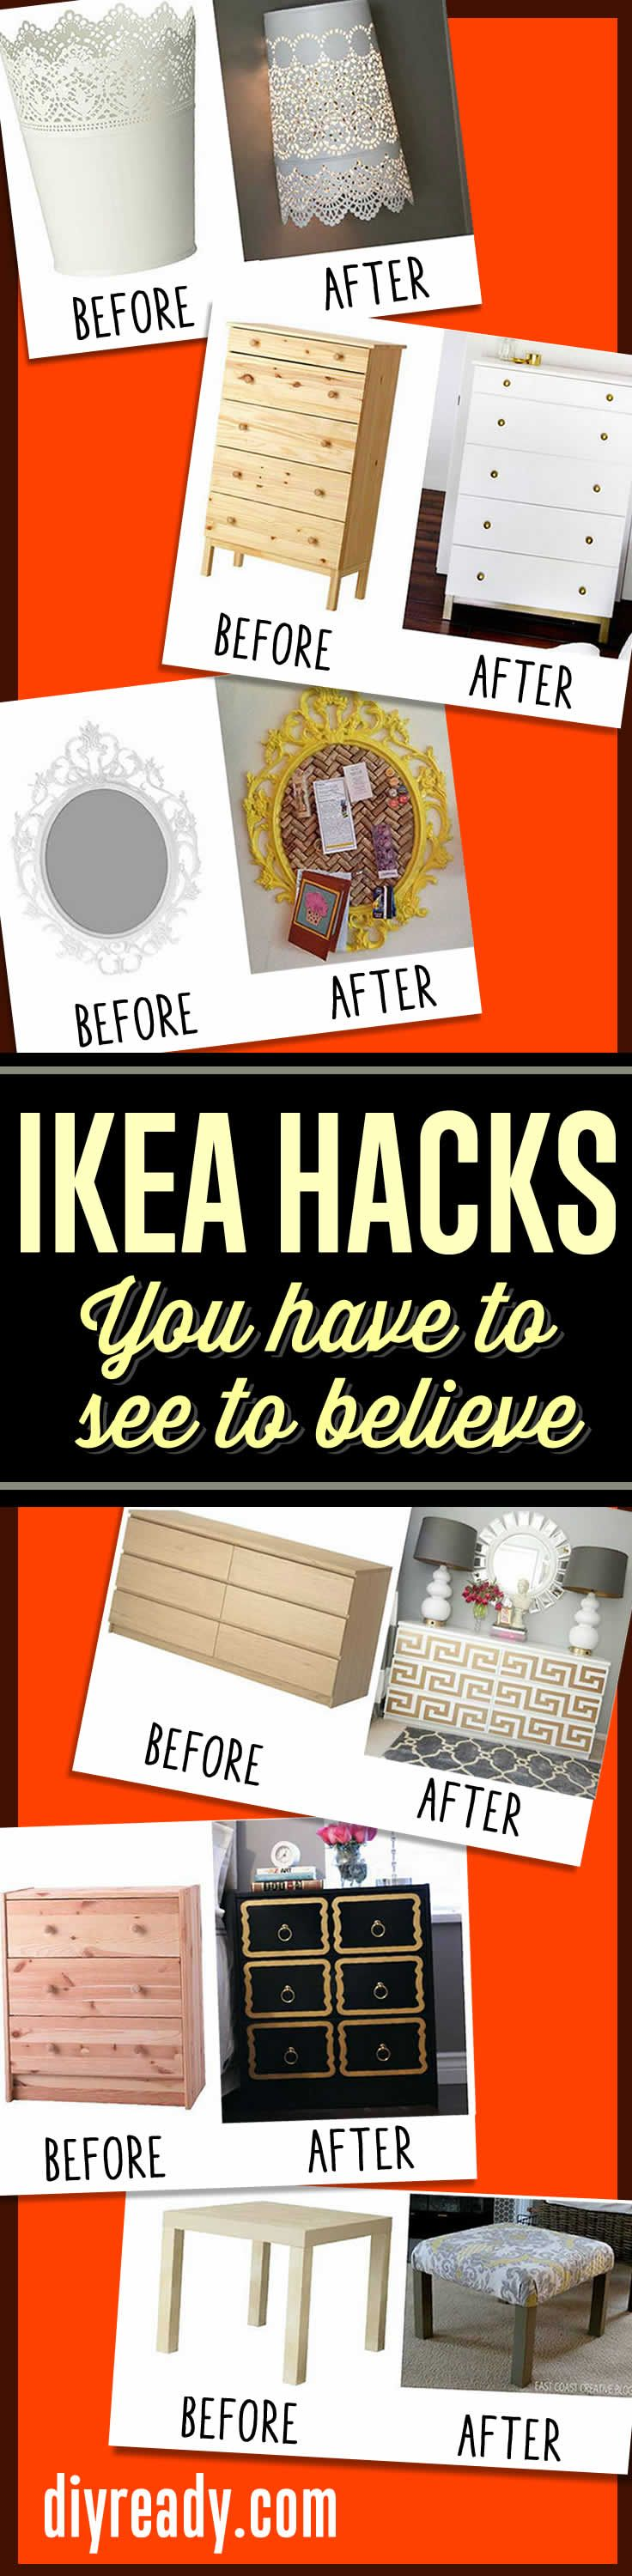 Best decor hacks ikea hack ideas ikea furniture hacks you have to see to believe diy - Fascinating home ideas decorating inspirations you have to see ...